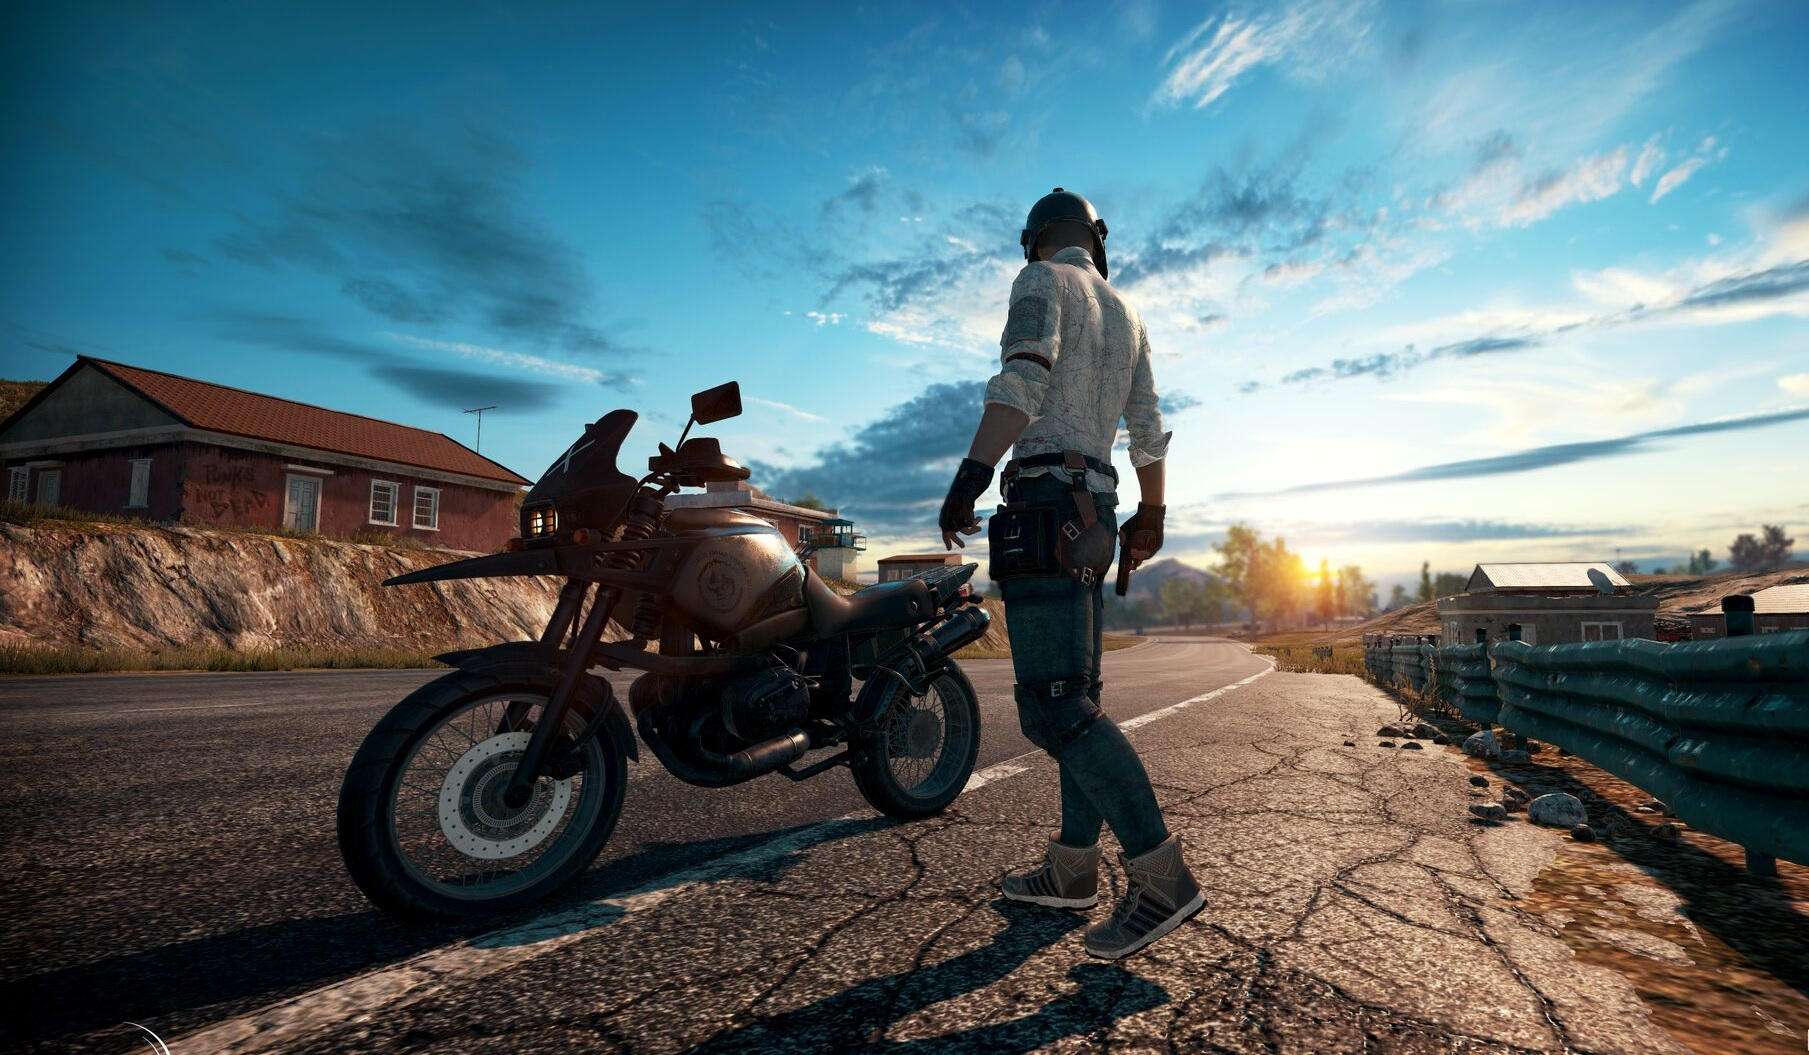 PUBG's recent server issues are due to the game being way too popular screenshot